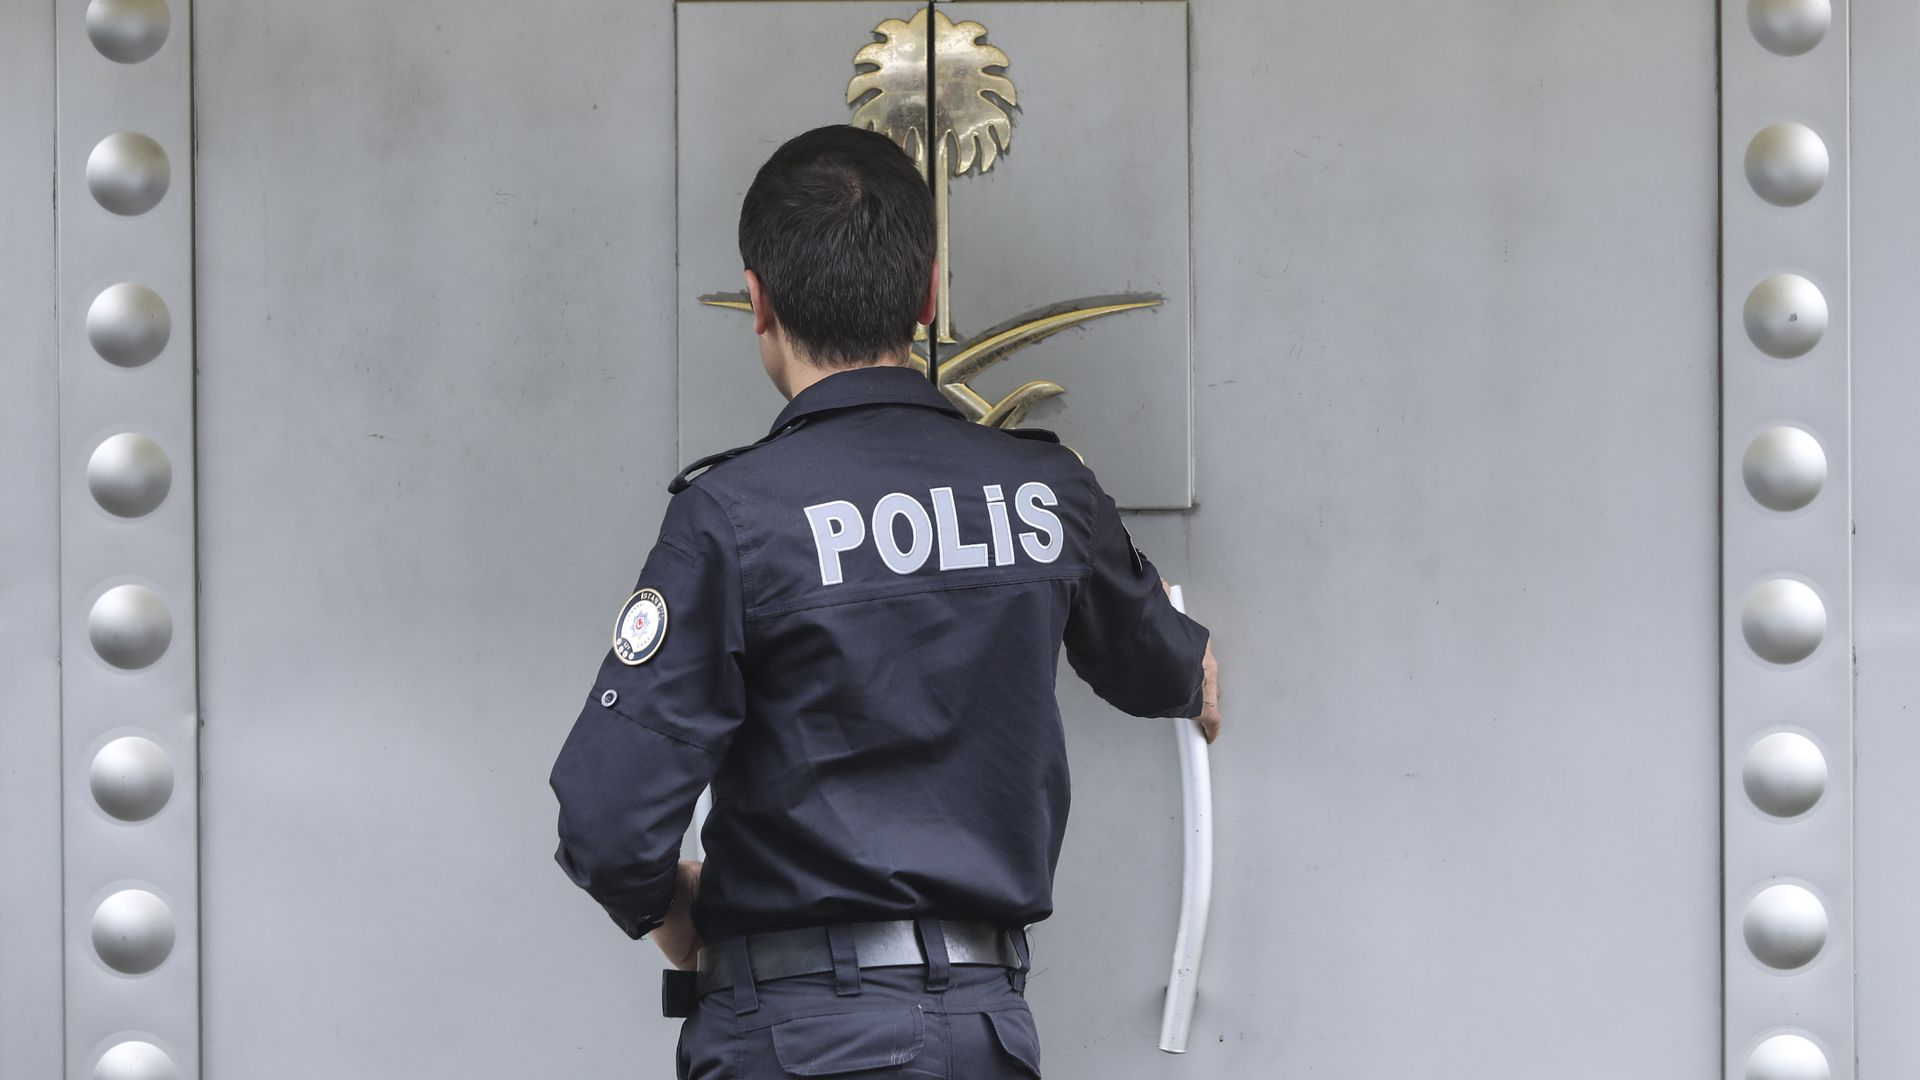 A Turkish police officer providing security enters the Saudi Arabia's consulate as they check papers of a man on October 12, 2018 in Istanbul, Turkey.